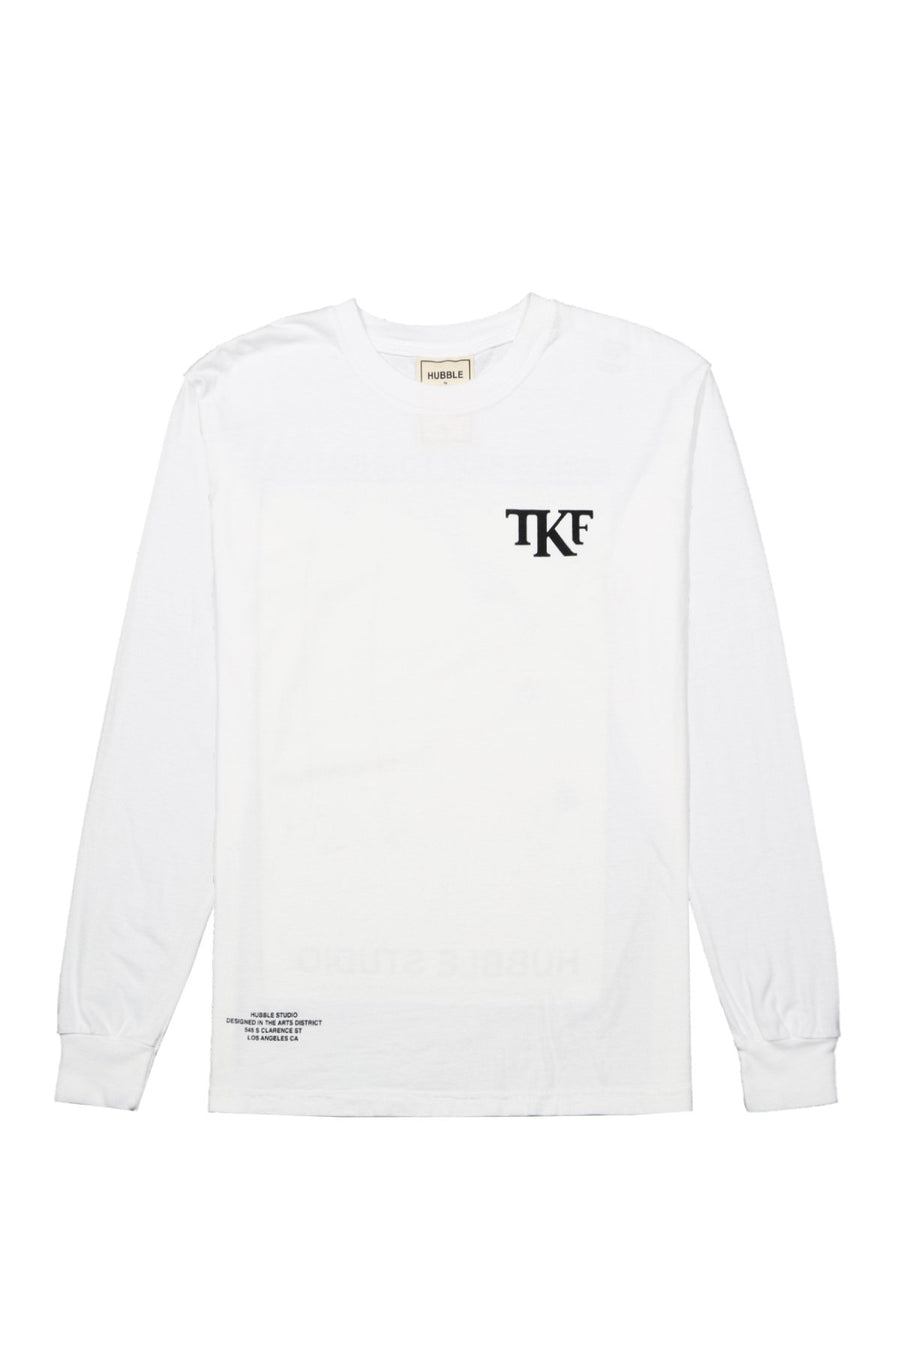 TKF XMAS Toy Drive + Wrapping Party - Long Sleeve Shirt